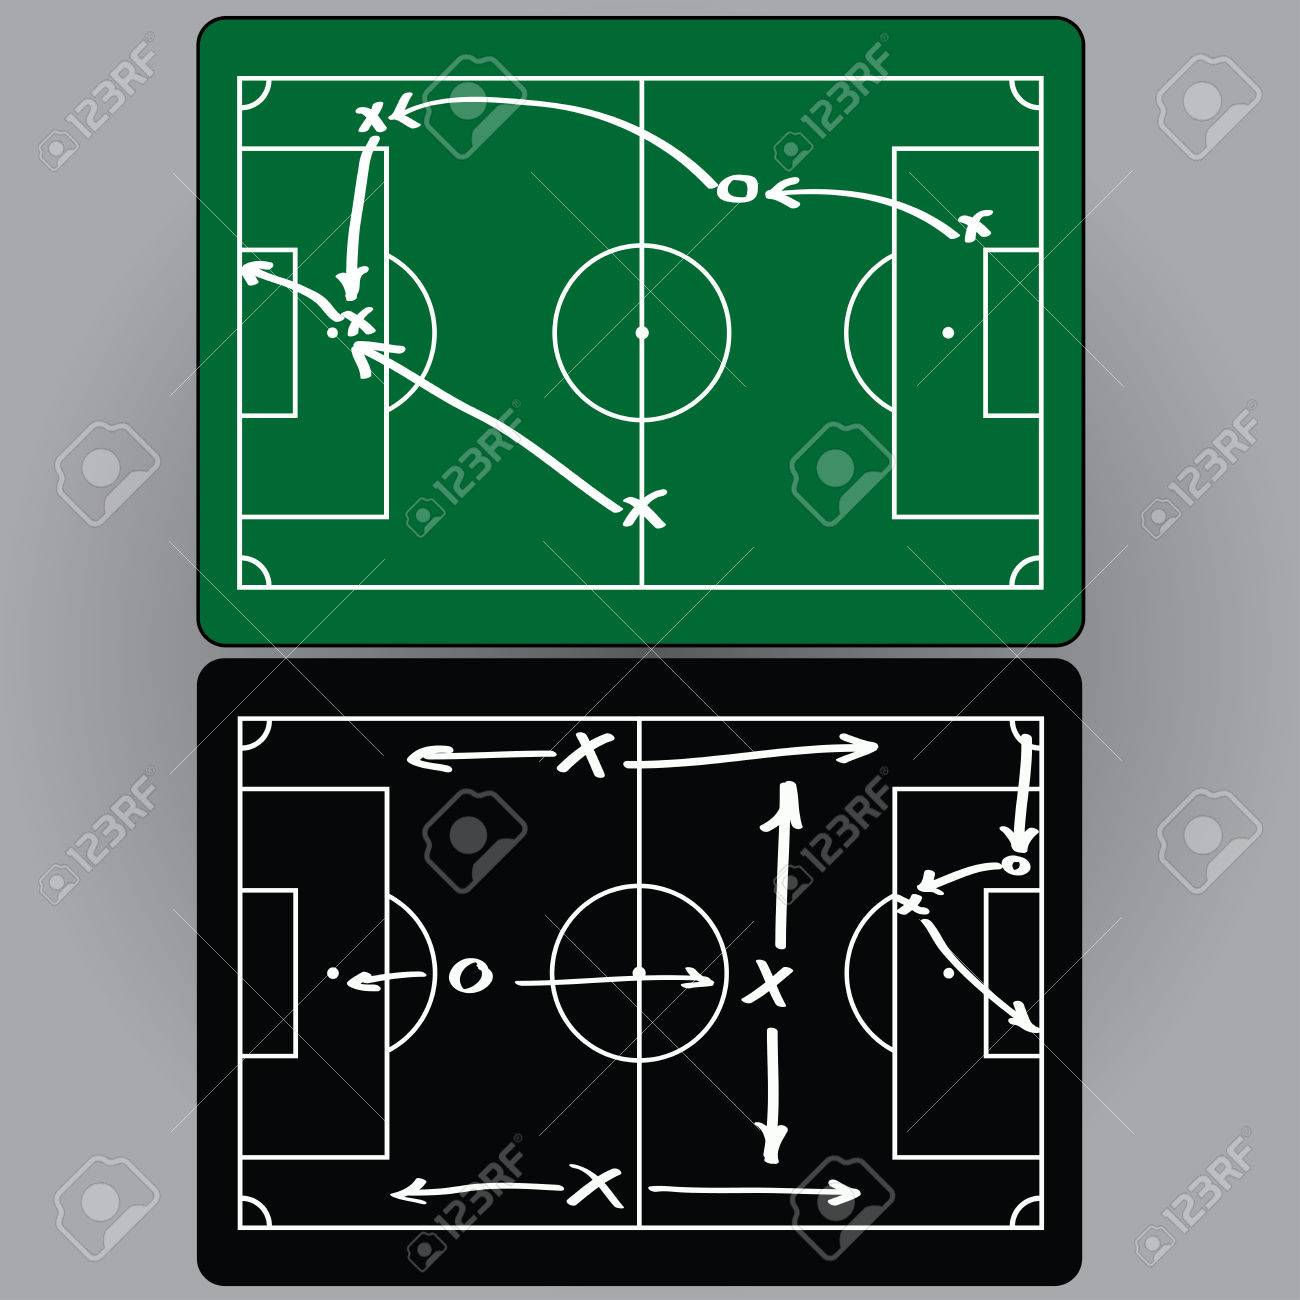 Football Tactics And Movement Of Players Charts Infographics